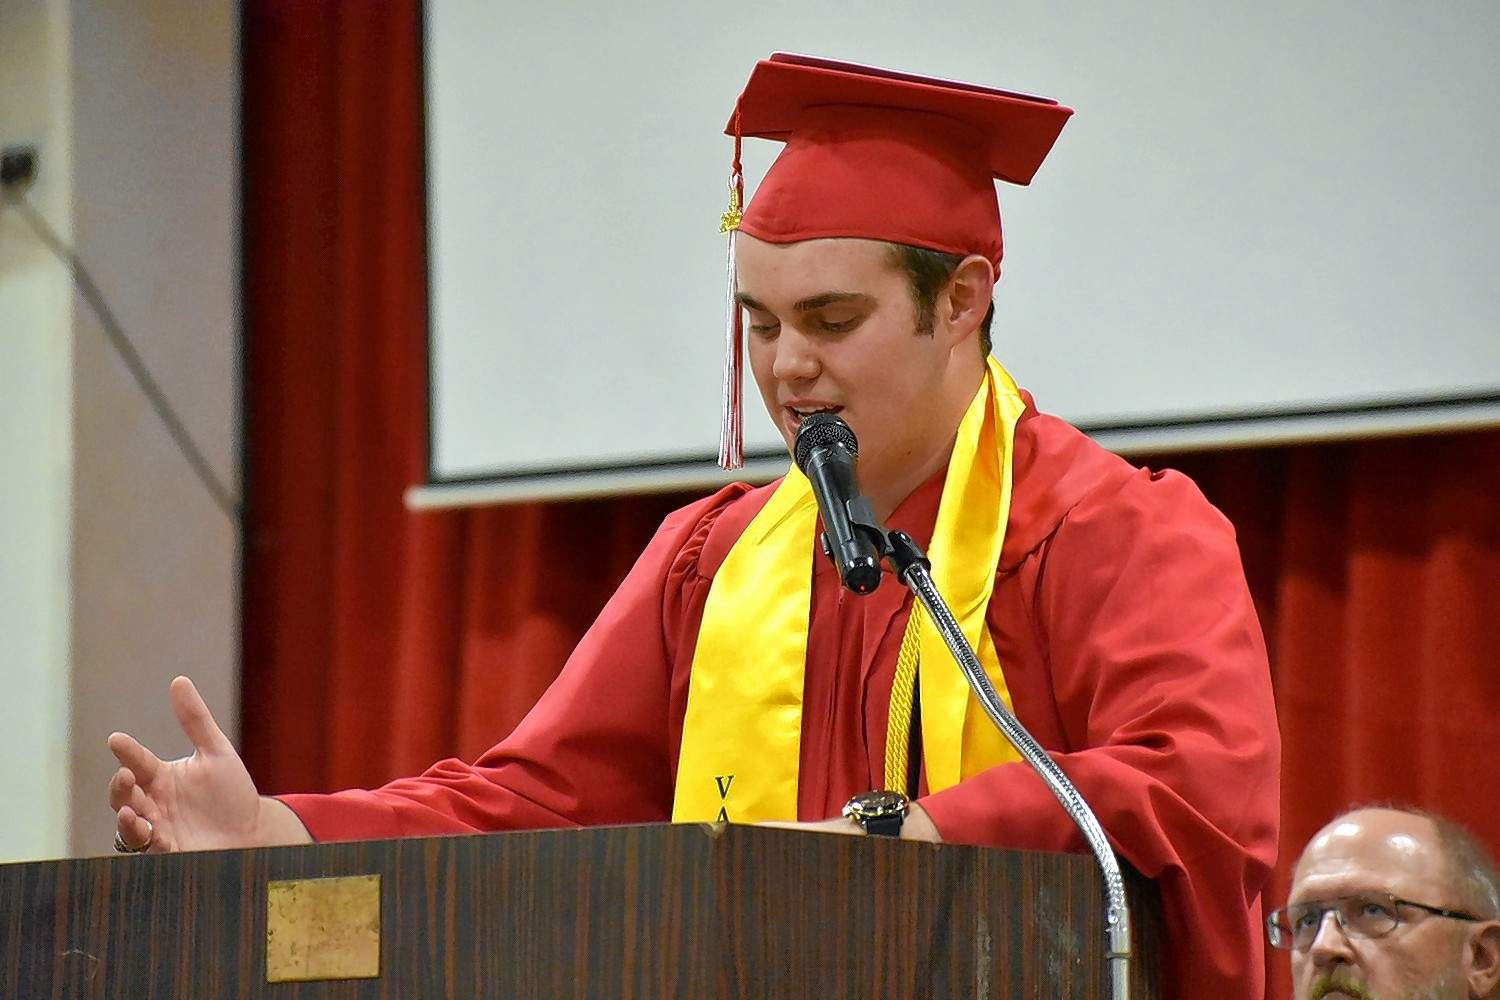 Galatia High School Class of 2019 valedictorian Cameron Michael Triplett speaks to his classmates during graduation. See more photos on page 5.